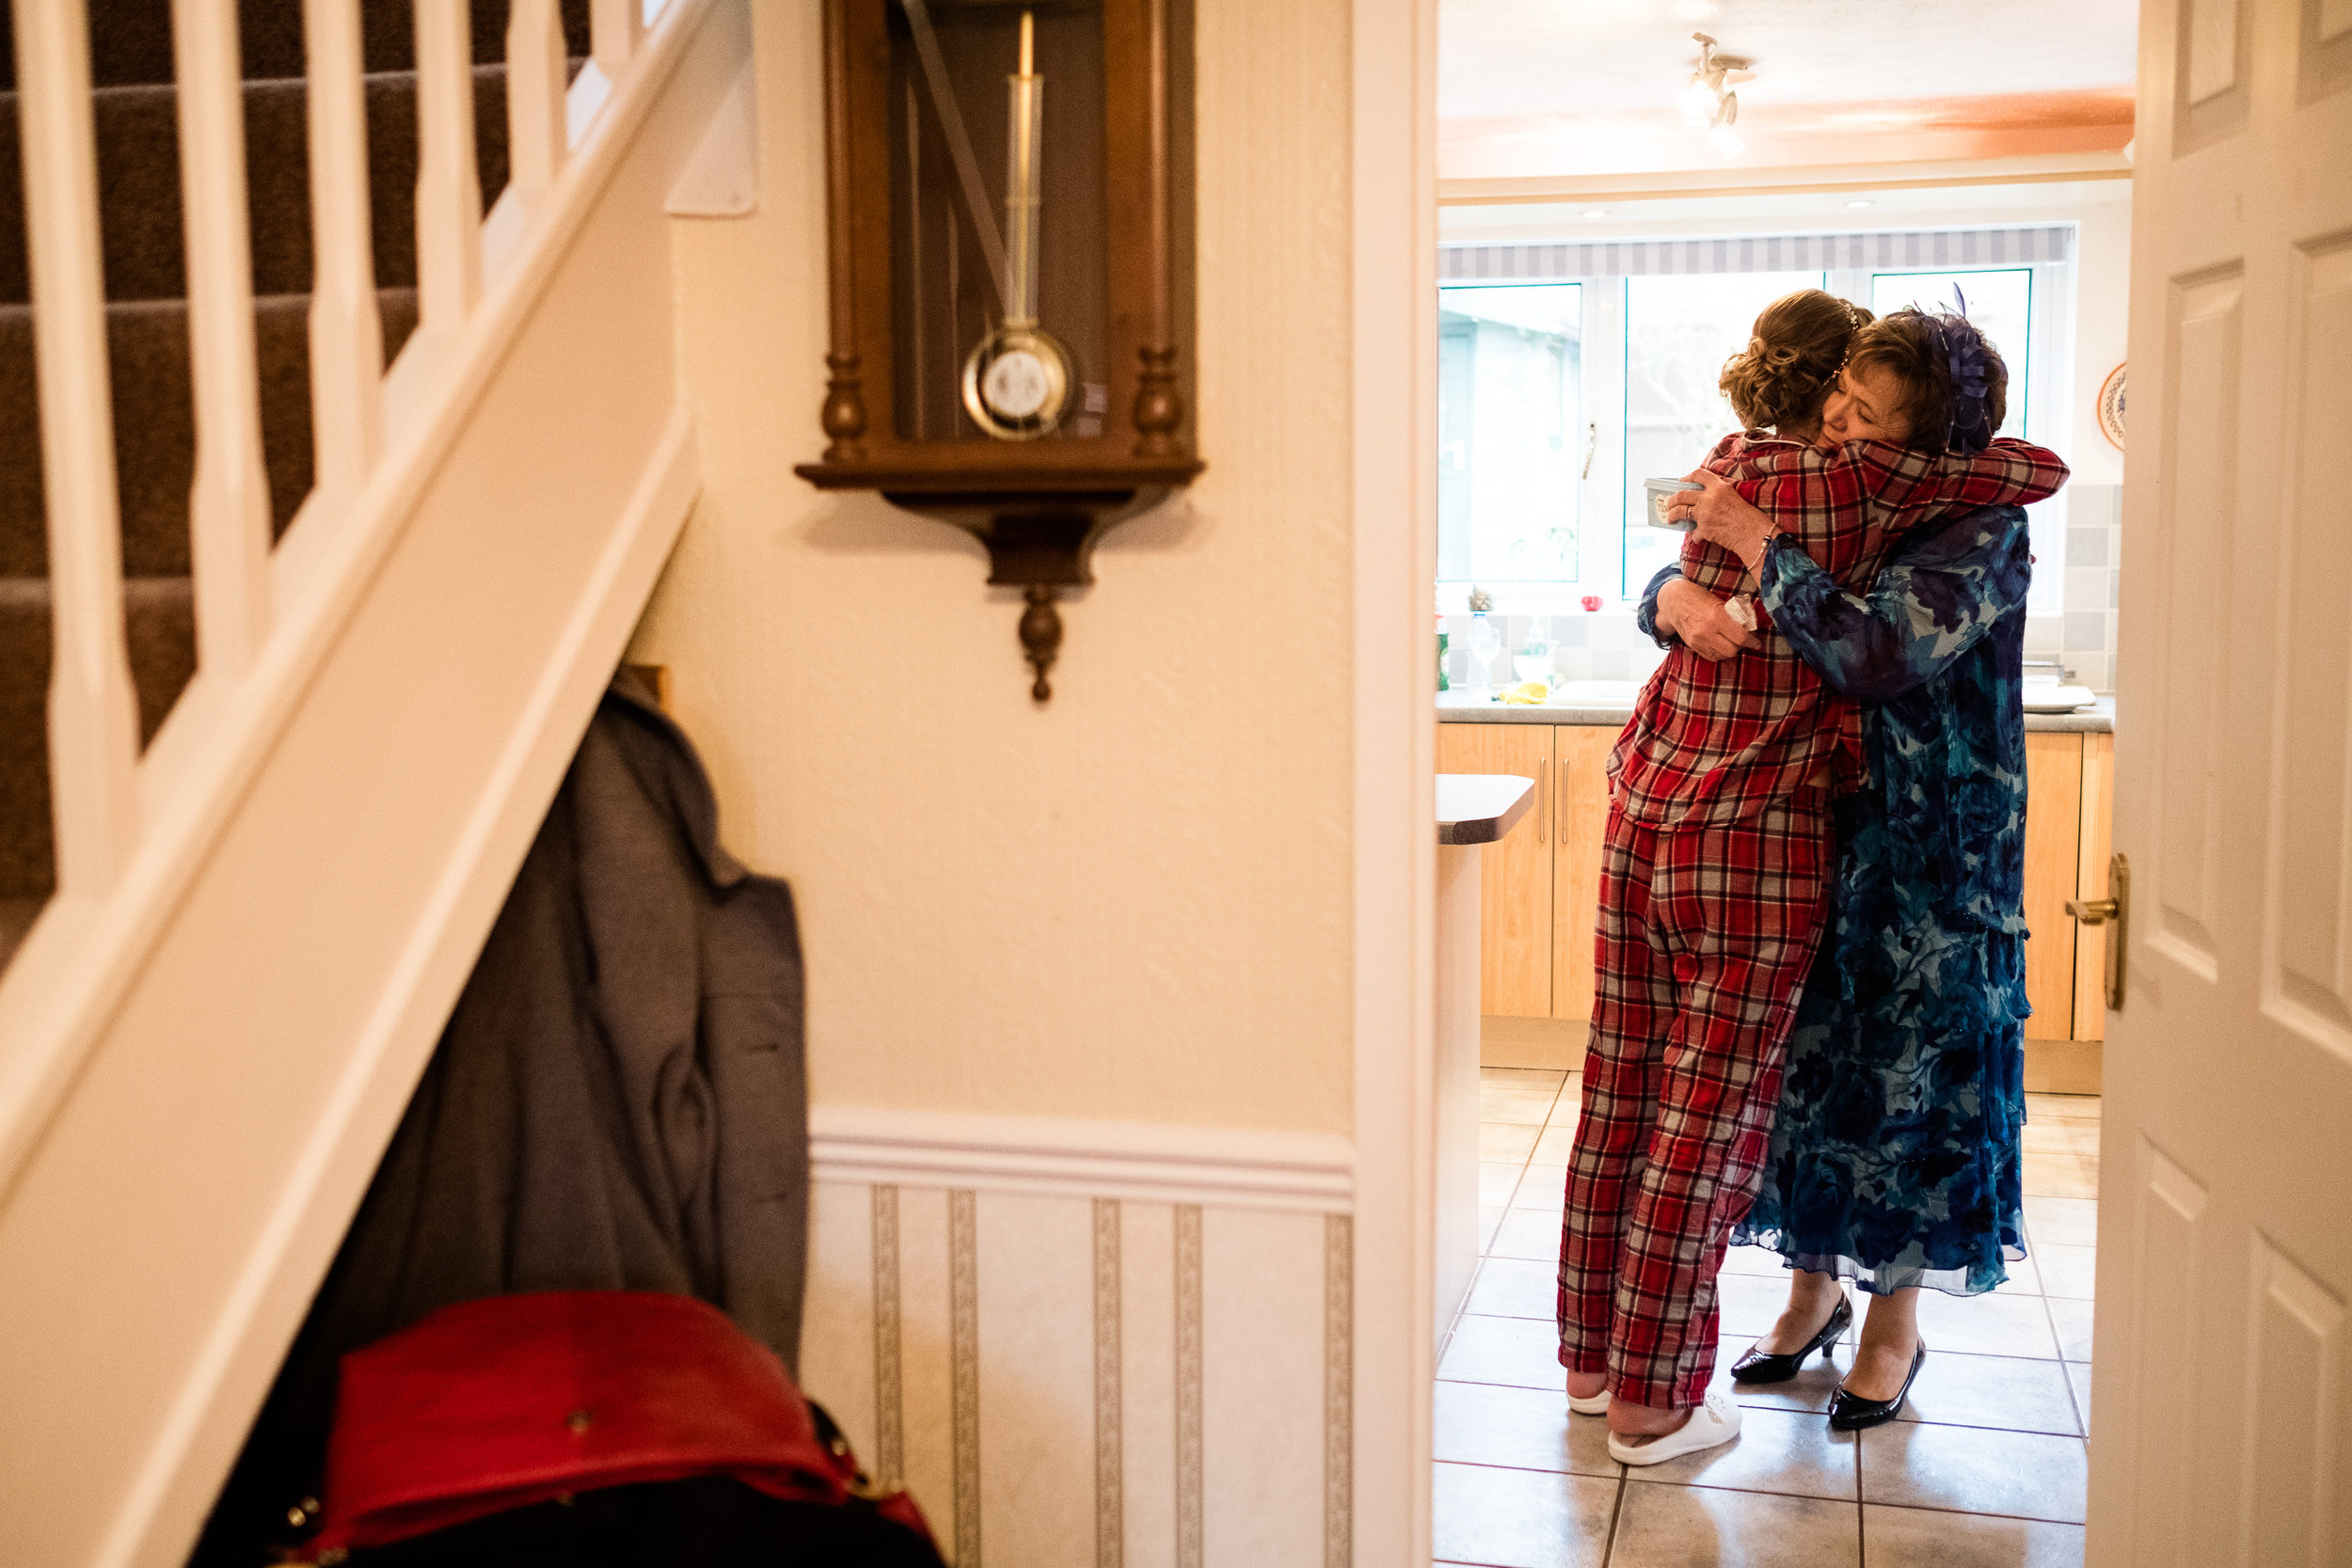 Birmingham Documentary Wedding Photography at New Hall, Sutton Coldfield Turkish Red Candid Reportage - Jenny Harper-9.jpg